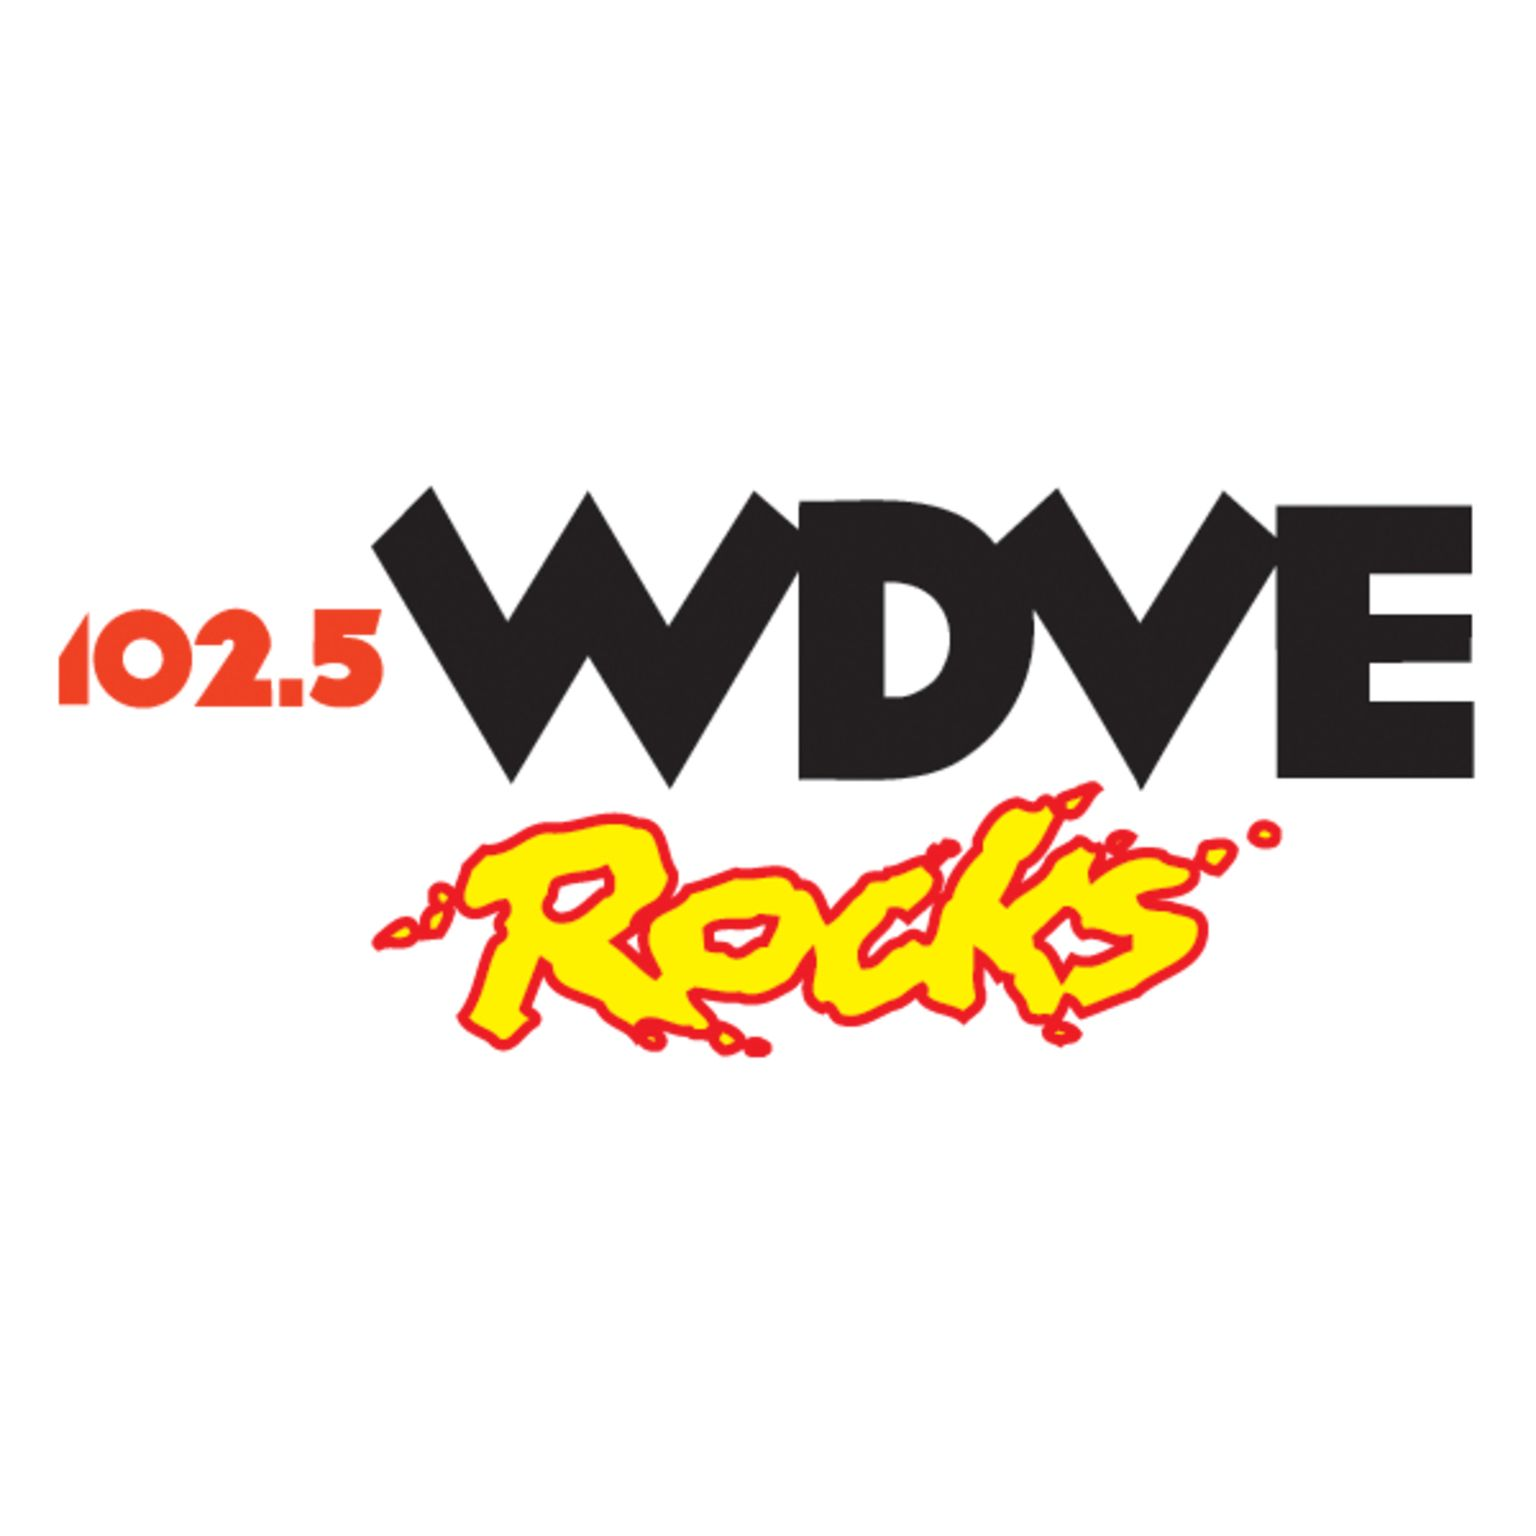 I\'m listening to 102.5 WDVE Rocks , Home of the Pittsburgh Steelers ...